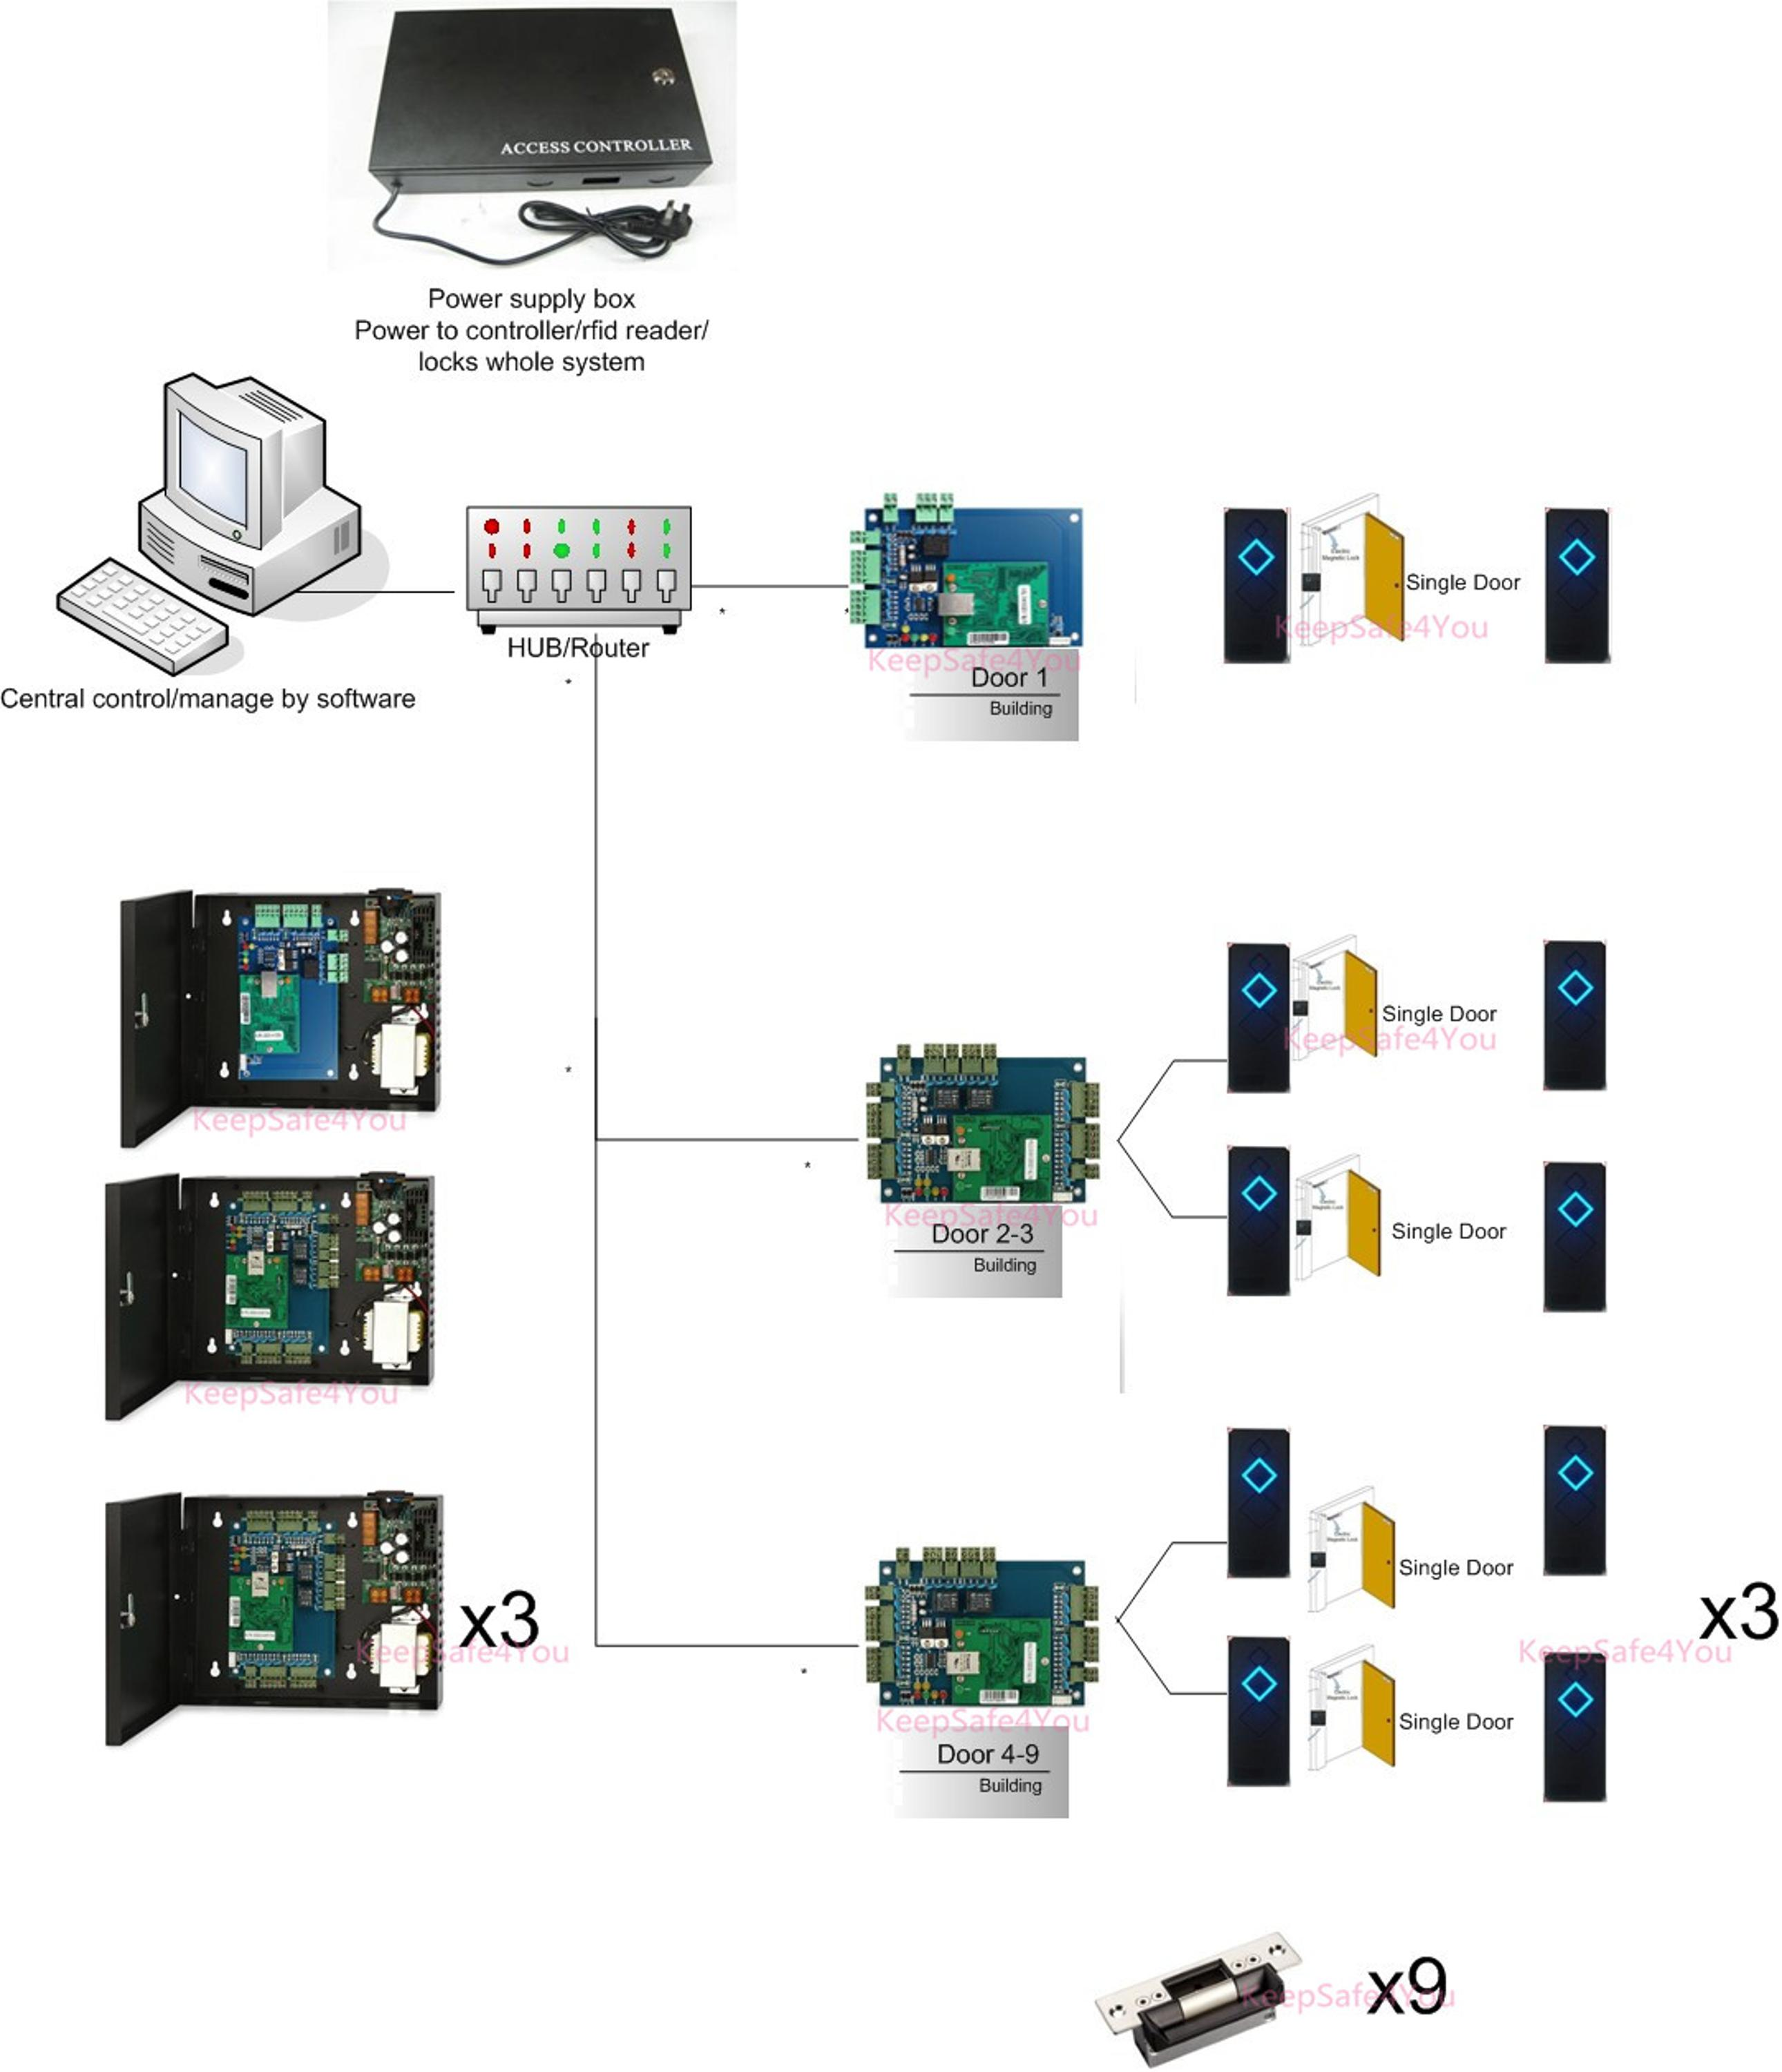 Generic Type Of Diagram And You Should Consult The Wiring Diagram